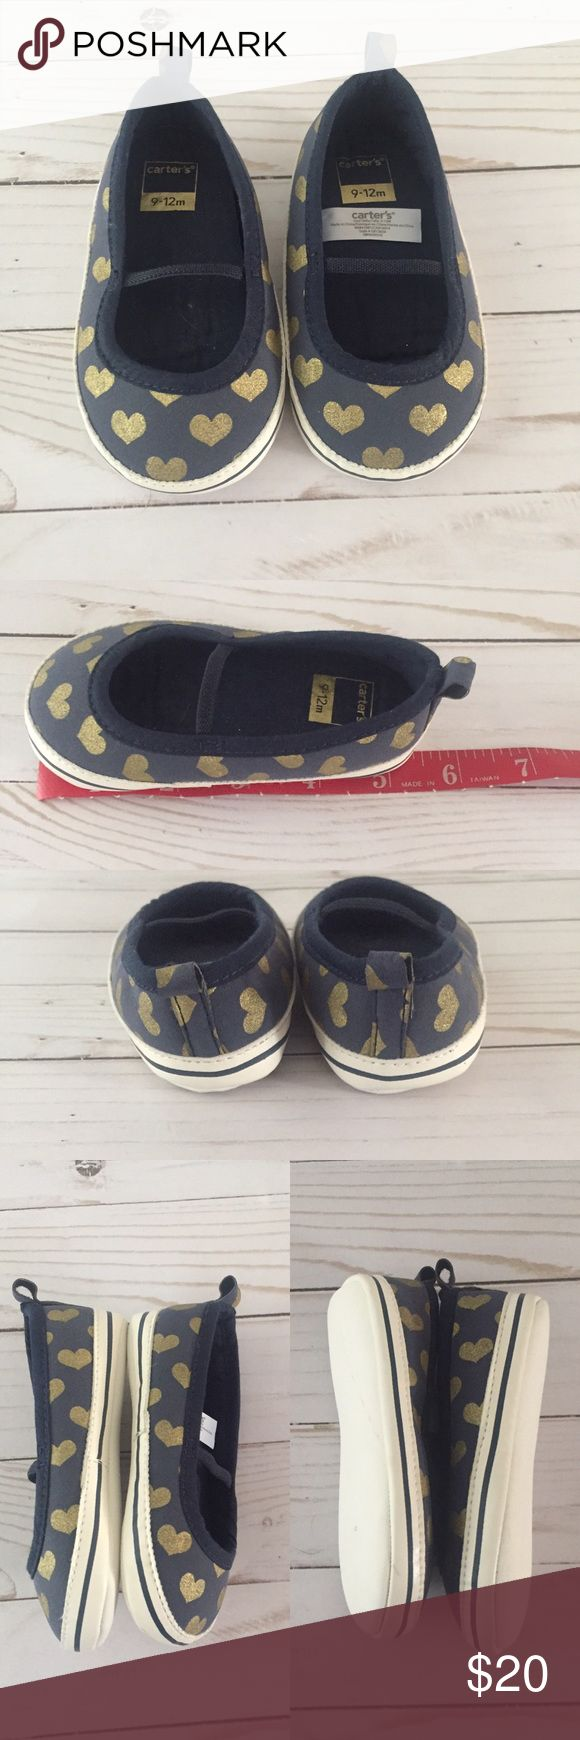 NWOT Carter's Baby shoes Never worn- nwot baby Carter's shoes. Soft sole. Open to offers. No trades. Shoes Baby & Walker